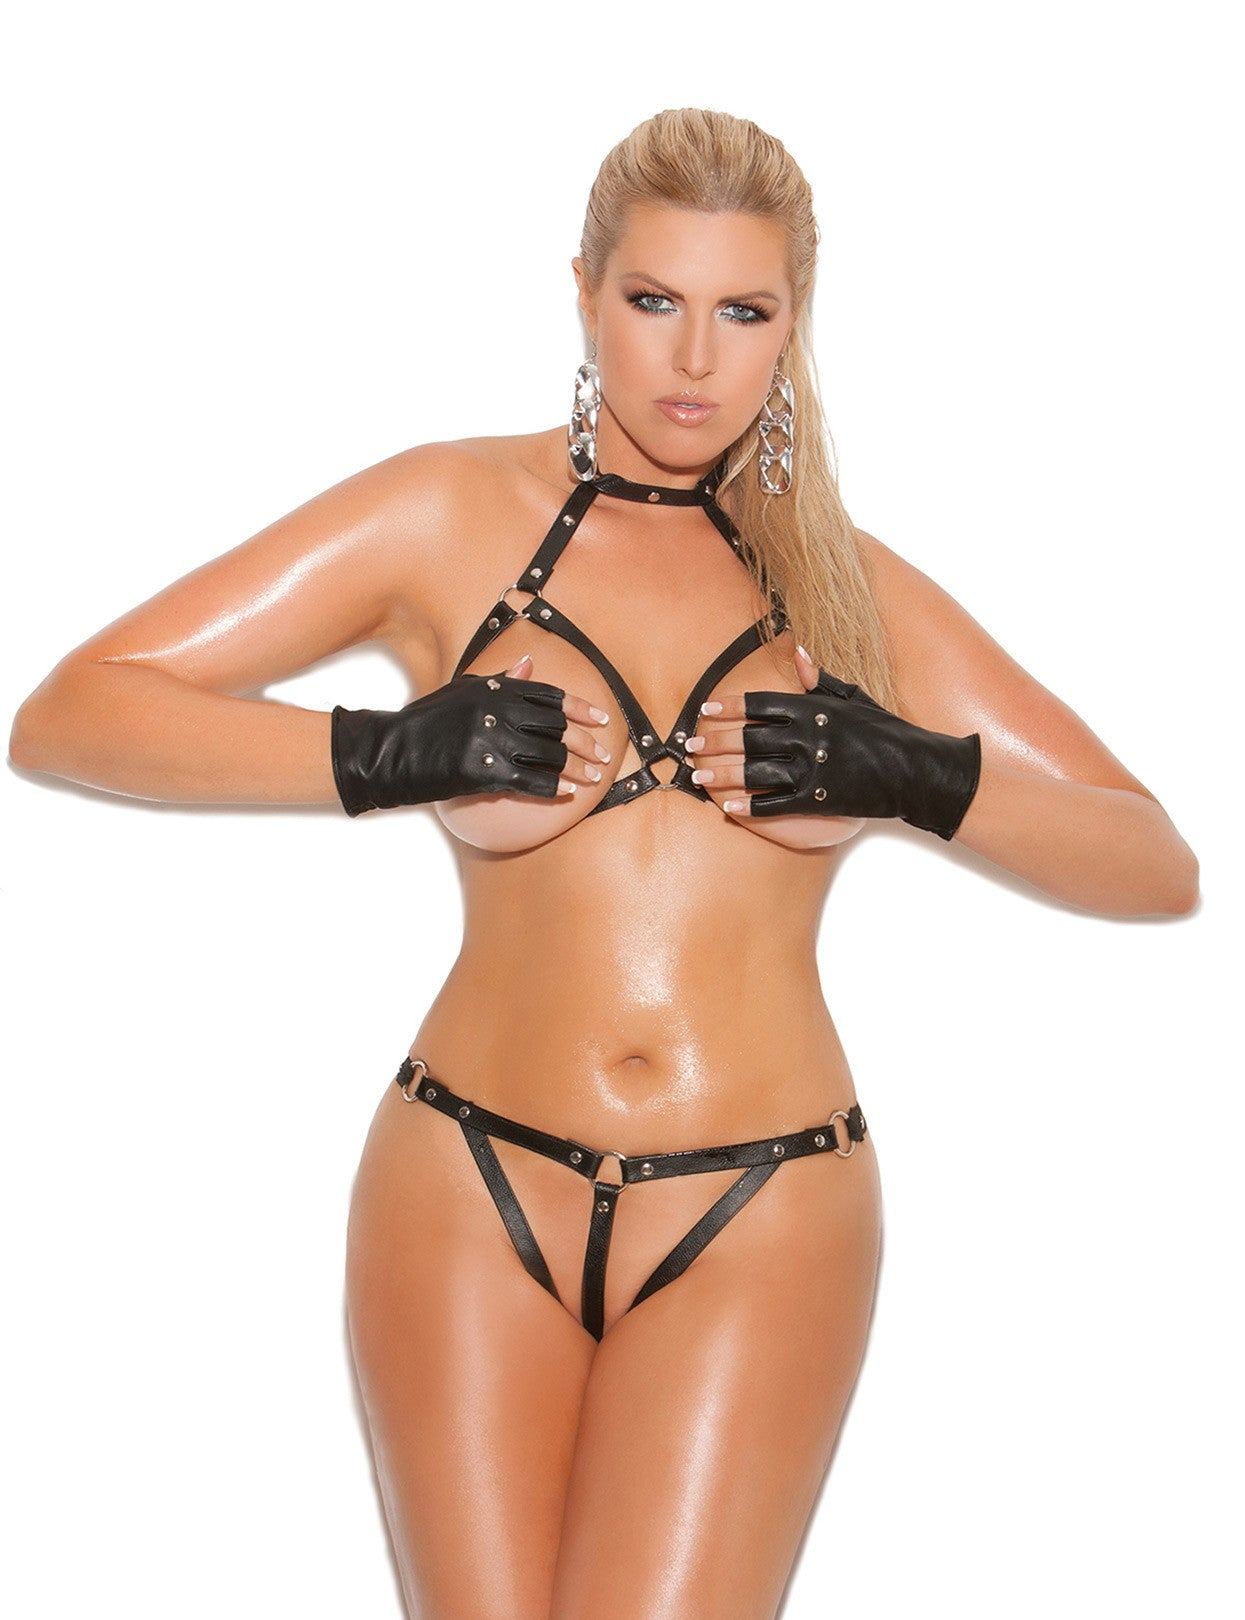 f34cc8c973 Plus Size Leather Open Cup Bra and Crotchless G-String - just damn sexy -